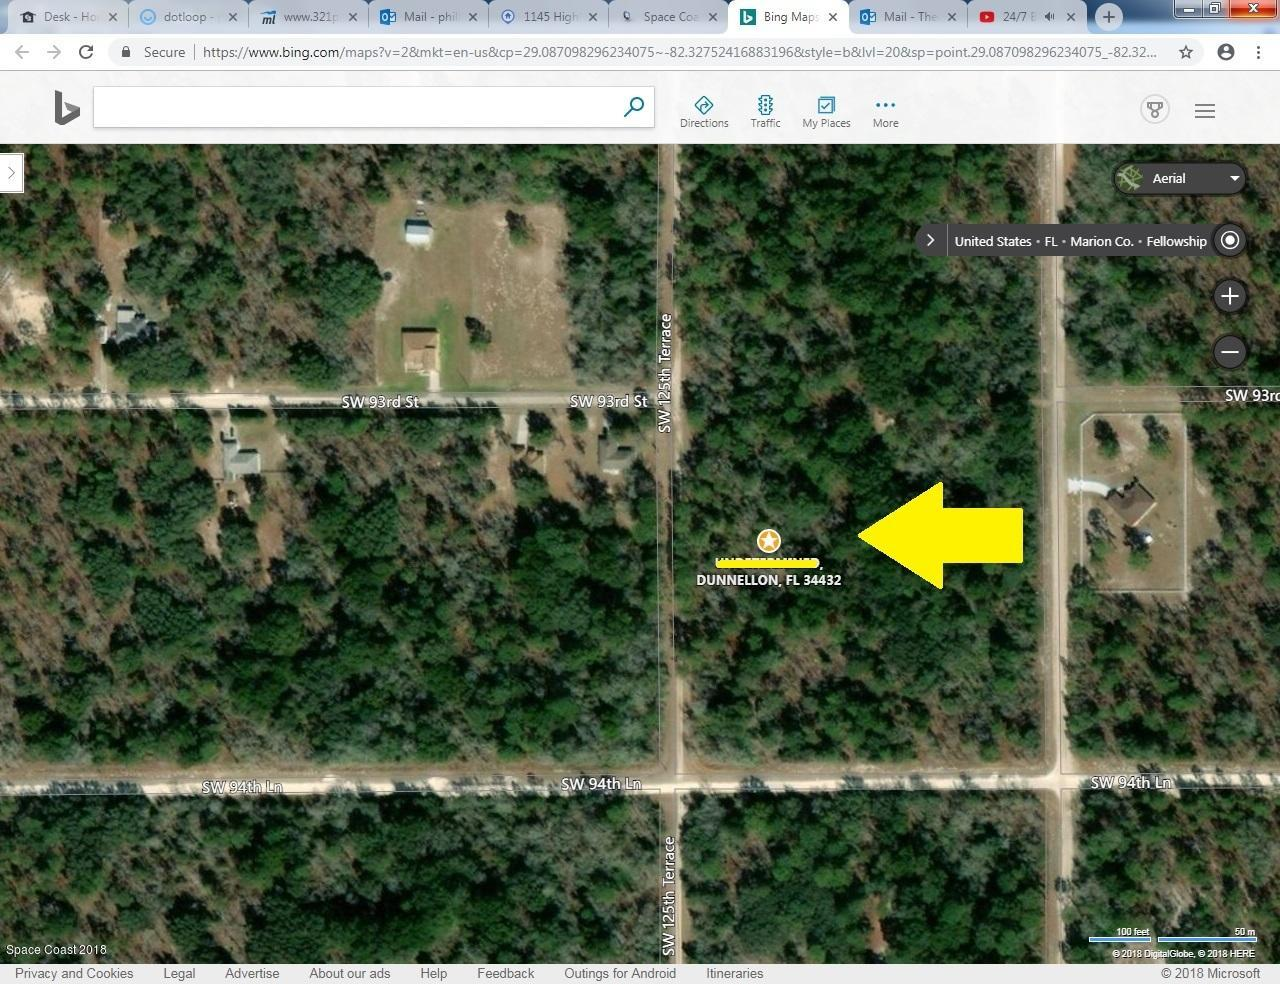 Land for Sale at SW 125th Ter, Dunnelon, Fl. 34432 SW 125th Ter, Dunnelon, Fl. 34432 Dunnellon, Florida 34433 United States